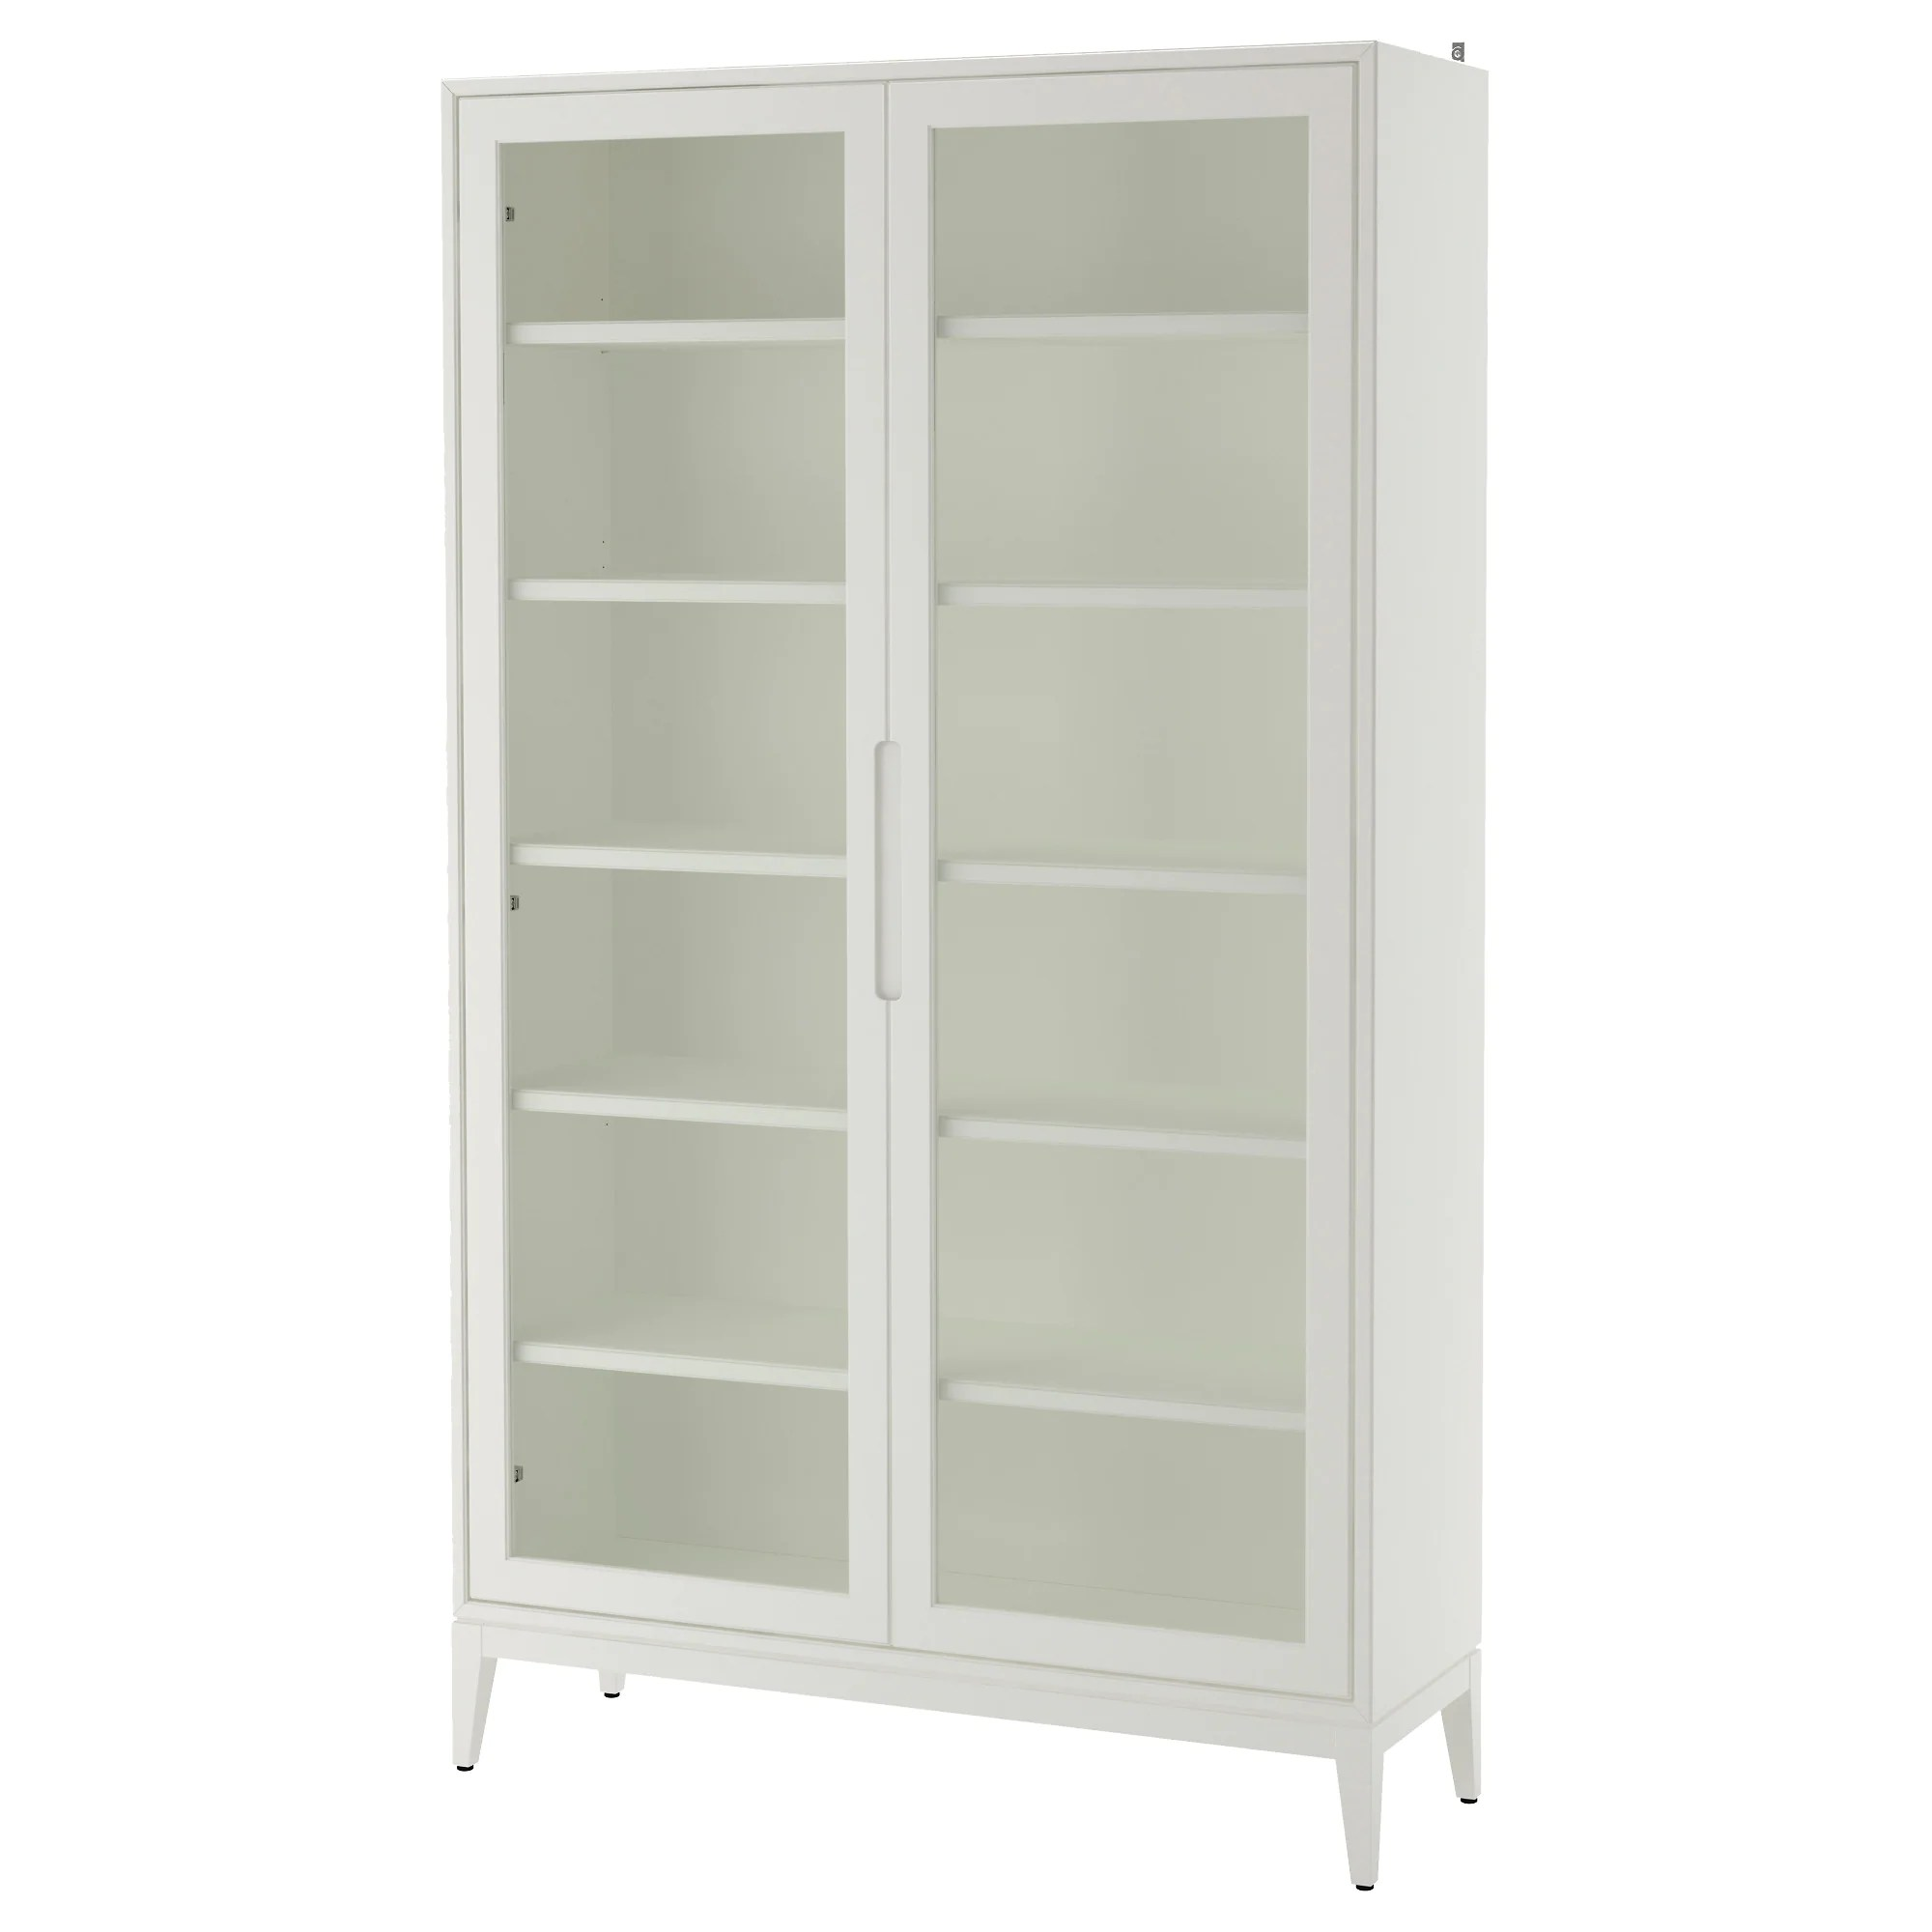 Ikea Storage Cabinets RegissÖr Glass Door Cabinet White